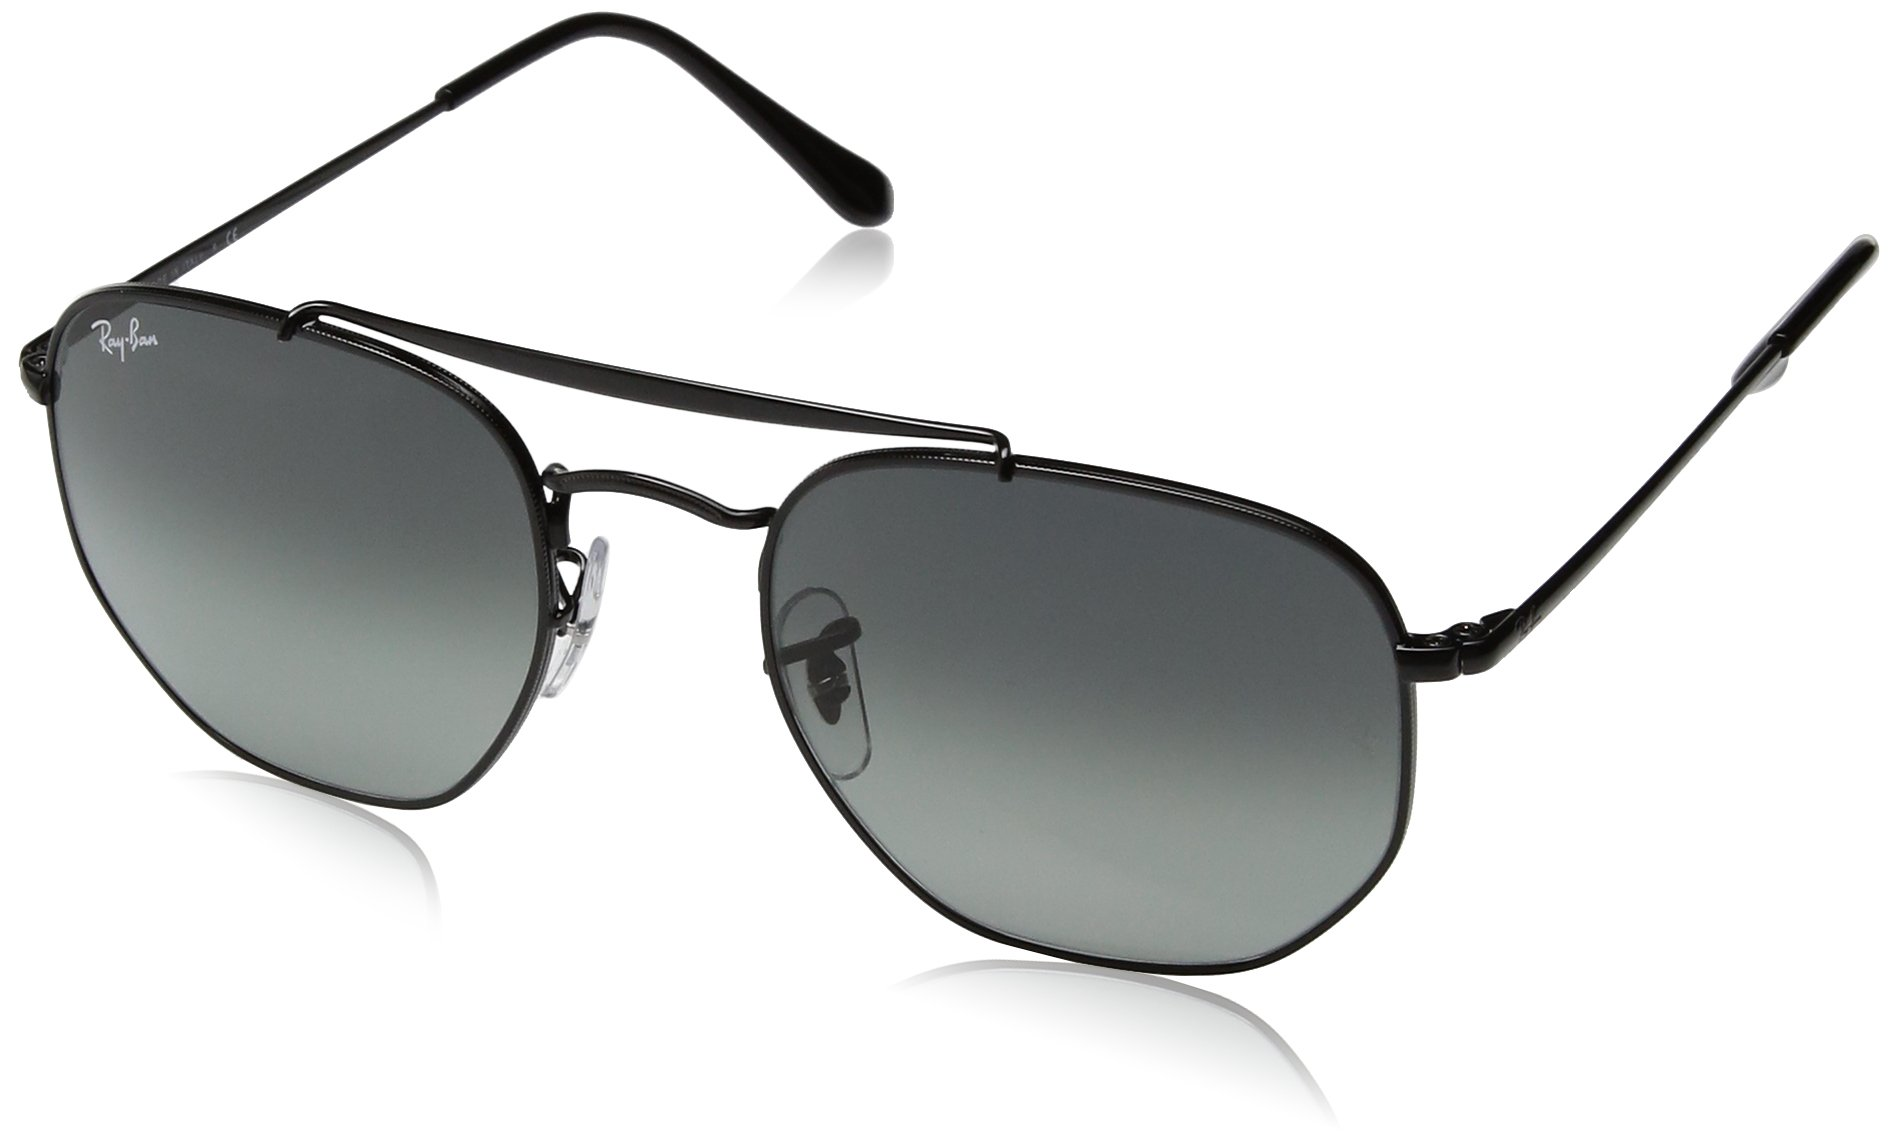 Ray-Ban Metal Unisex Square Sunglasses, Black, 54 mm by Ray-Ban